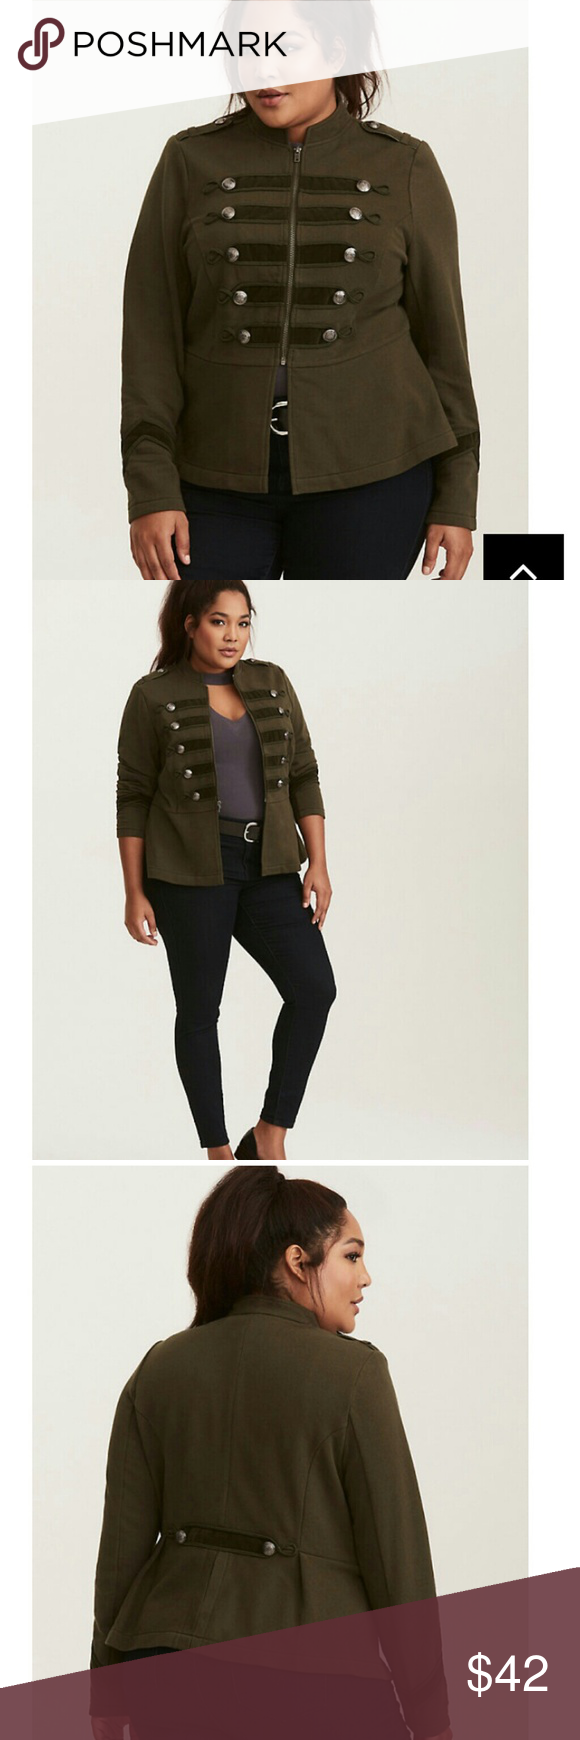 3b36327d333 Torrid embellished zip front military jacket The military trend is taking  orders from you this season! Thick olive green knit gives a high-ranking  look and ...